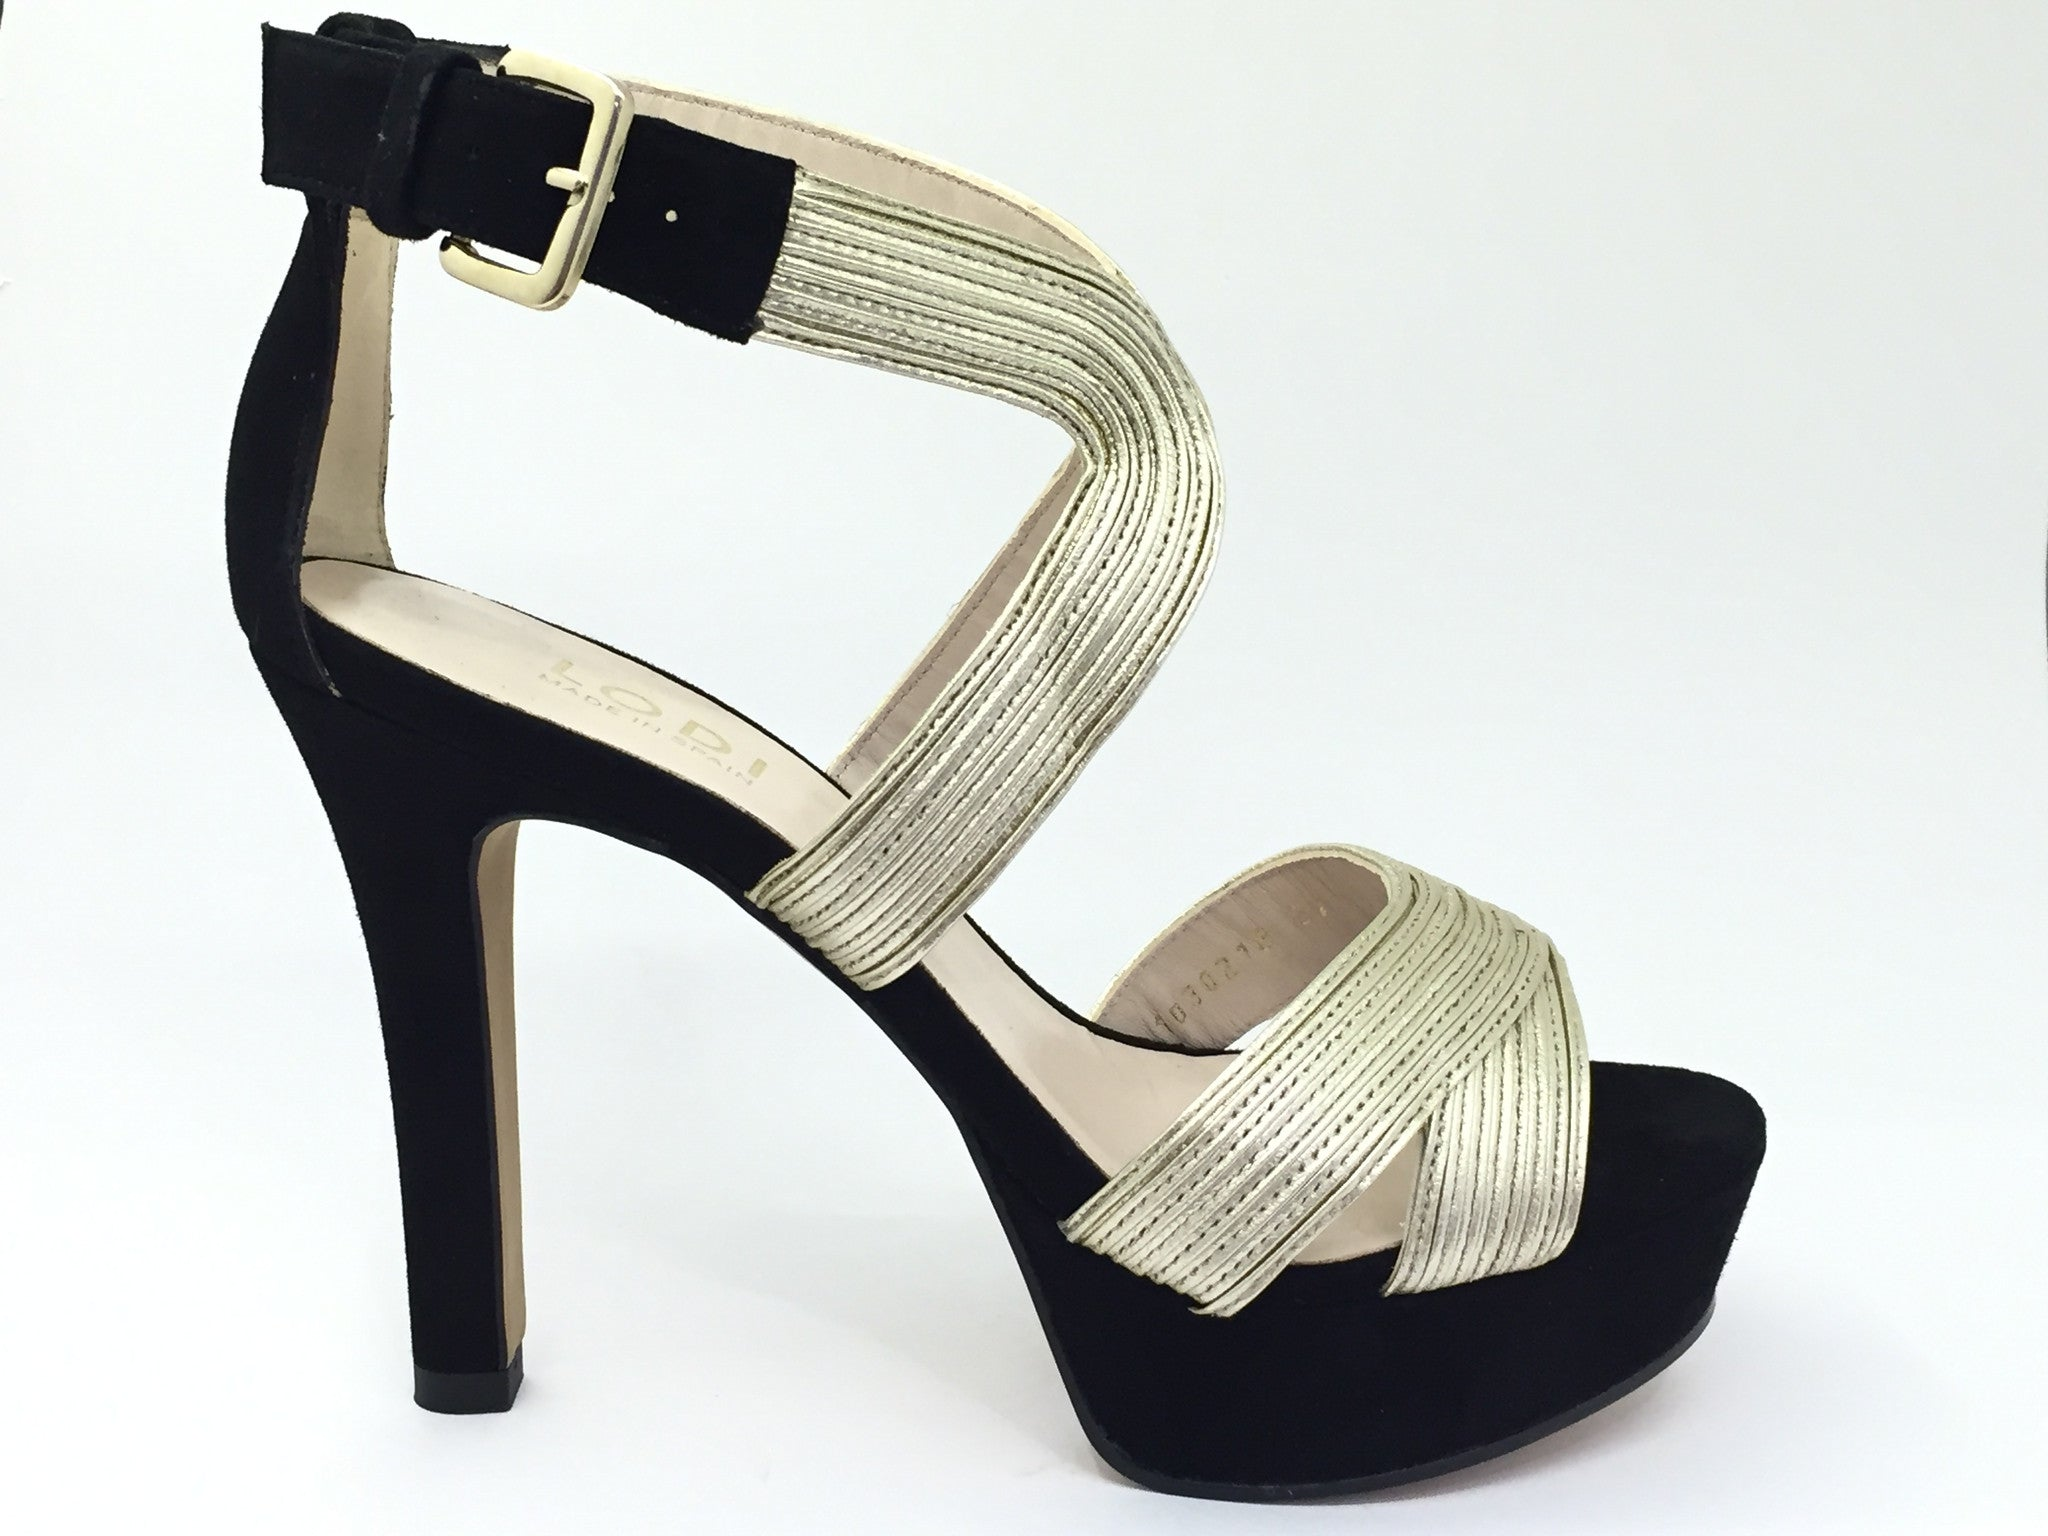 Lodi Black High Heel Sandal